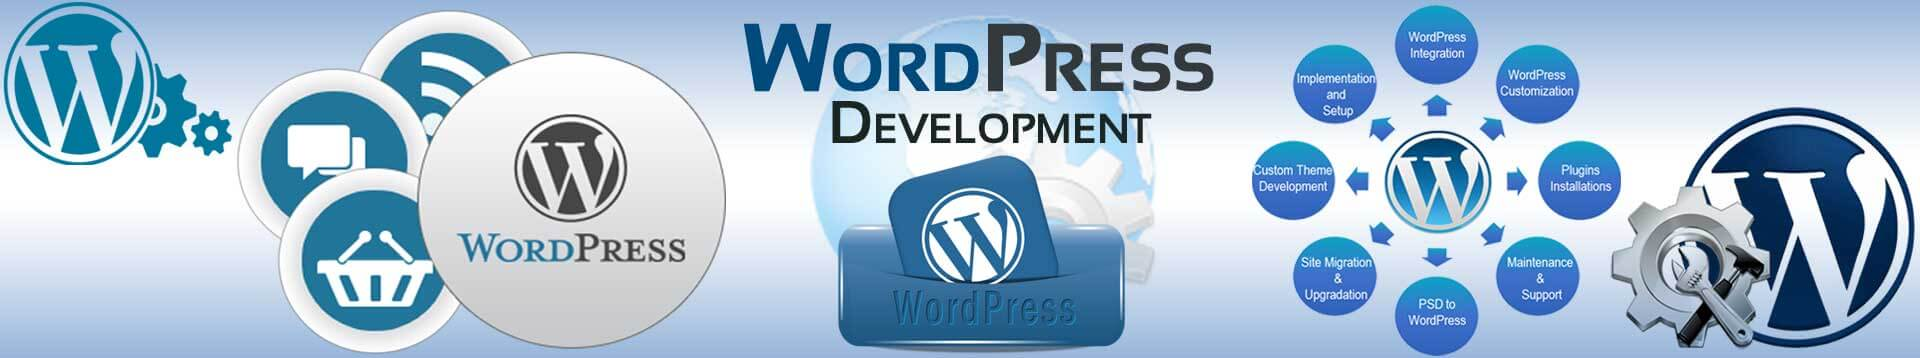 wordpress training in bangladesh